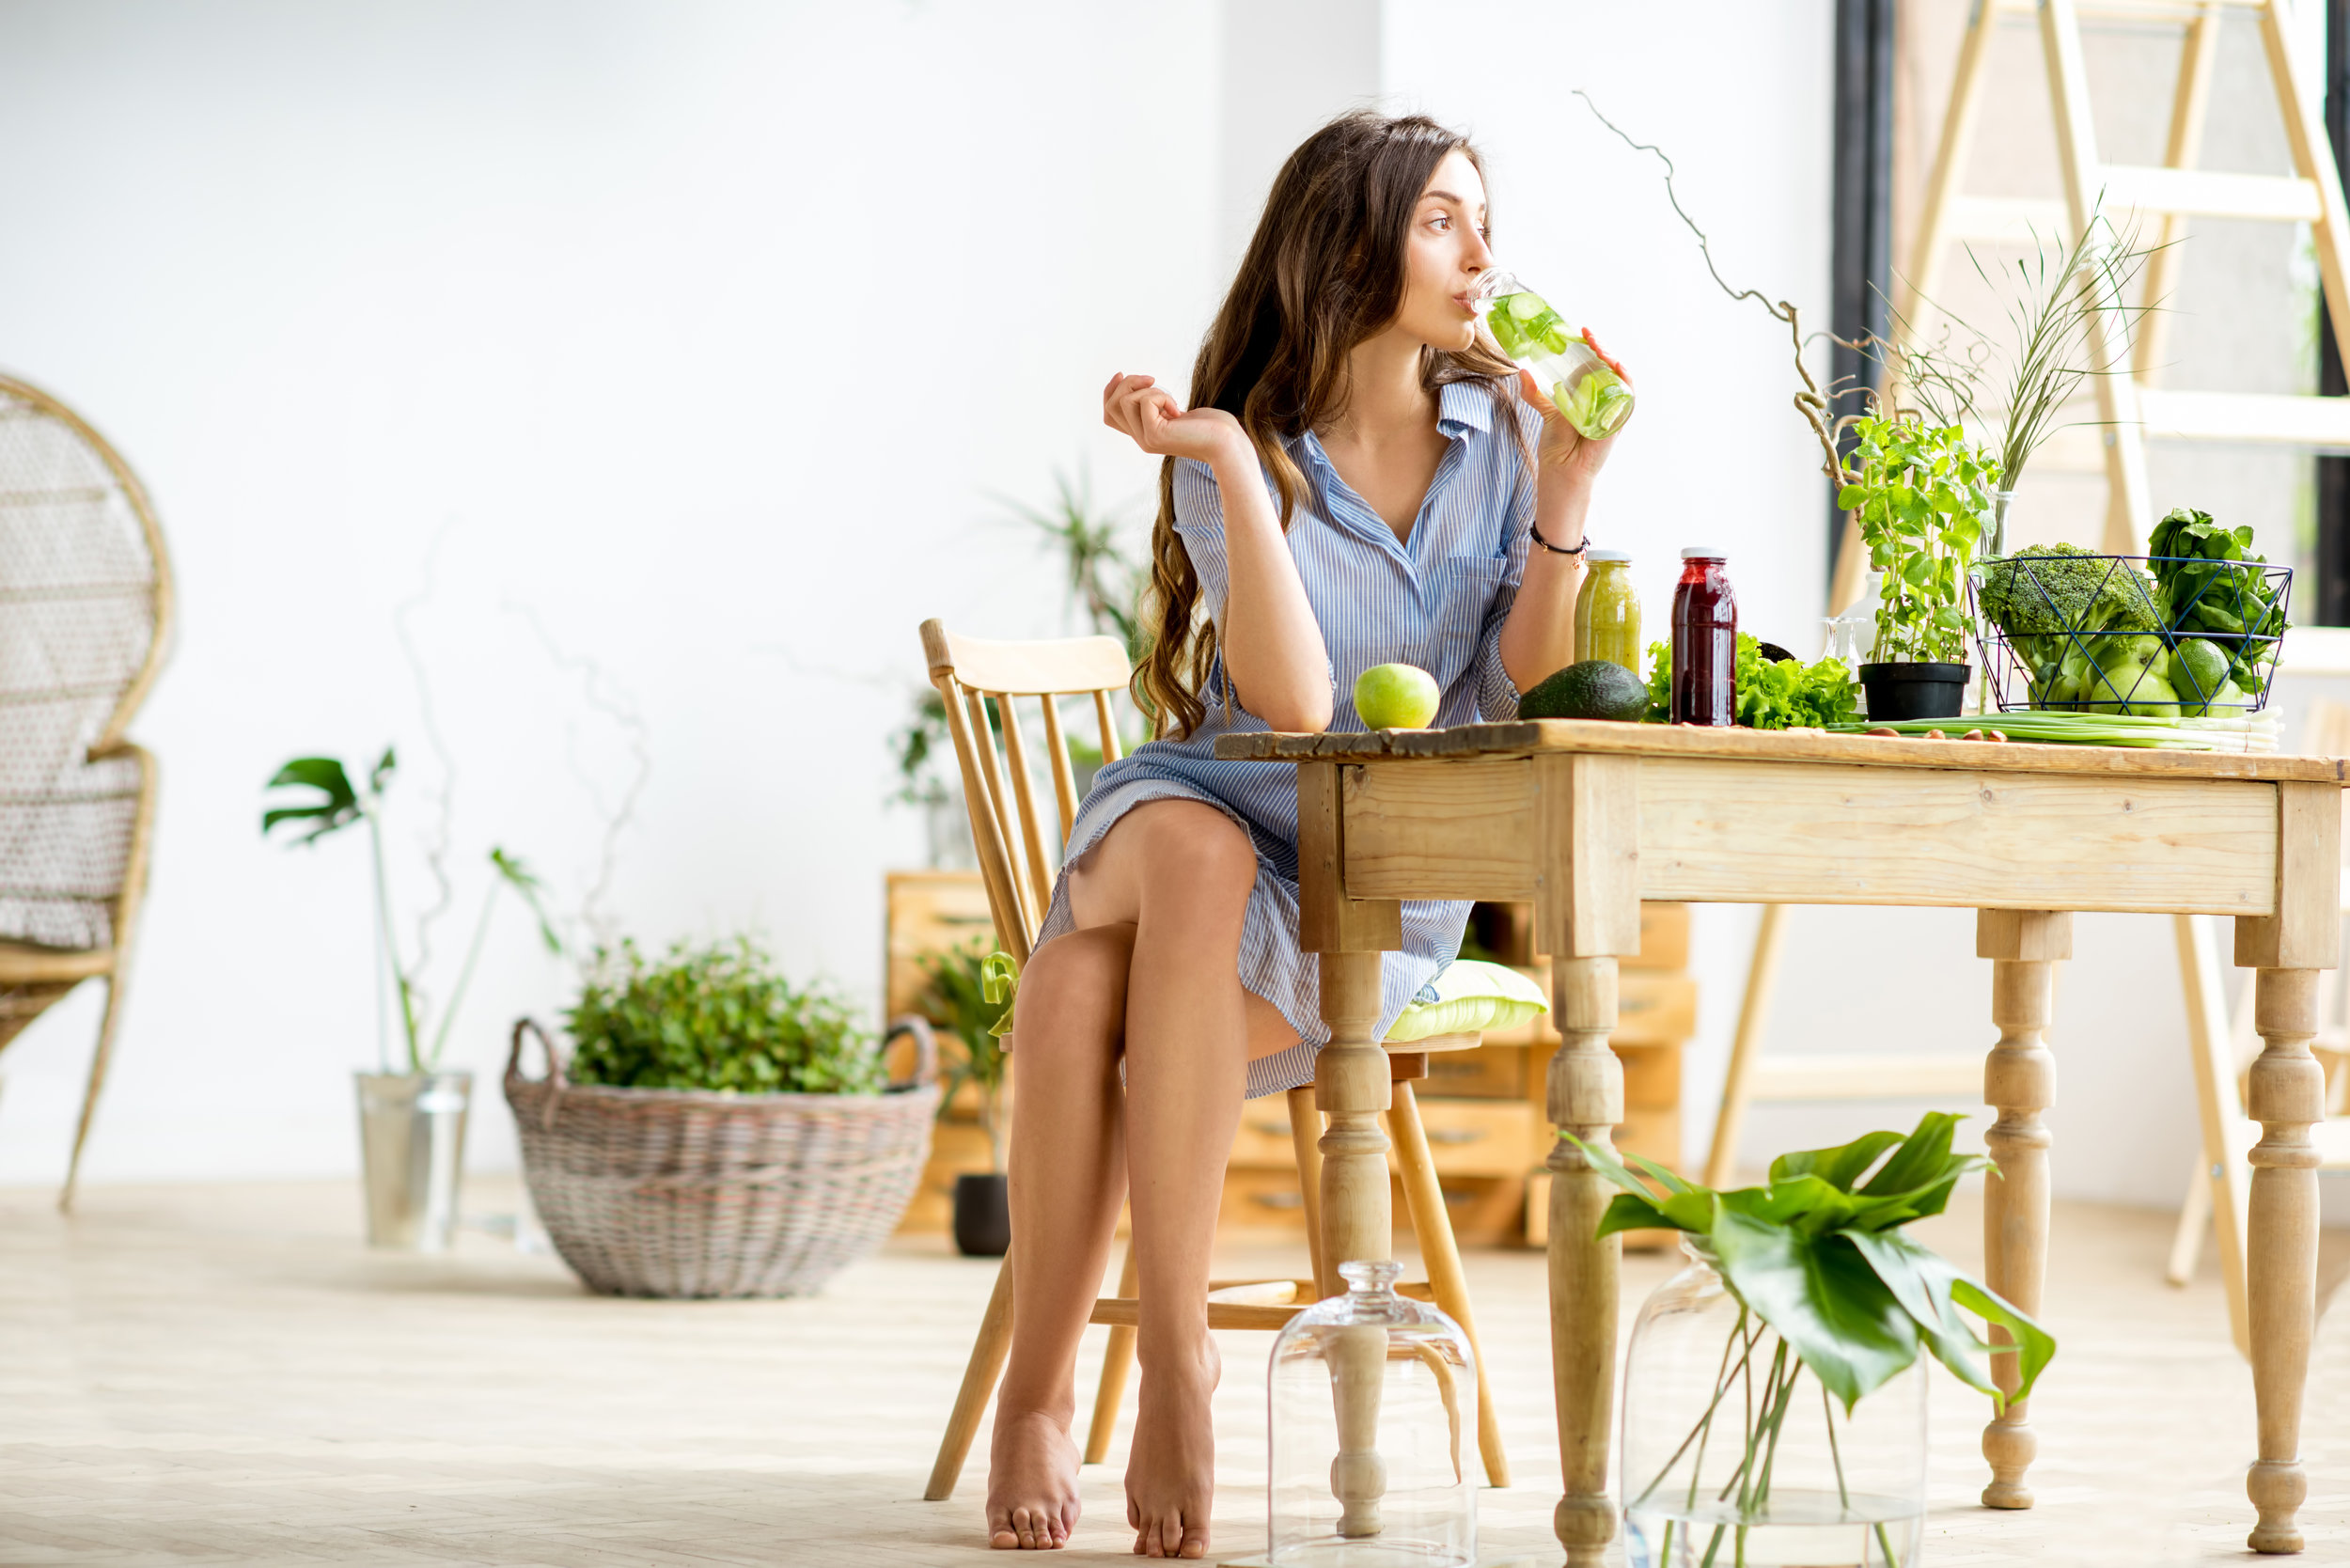 woman sitting at table with greens.jpeg